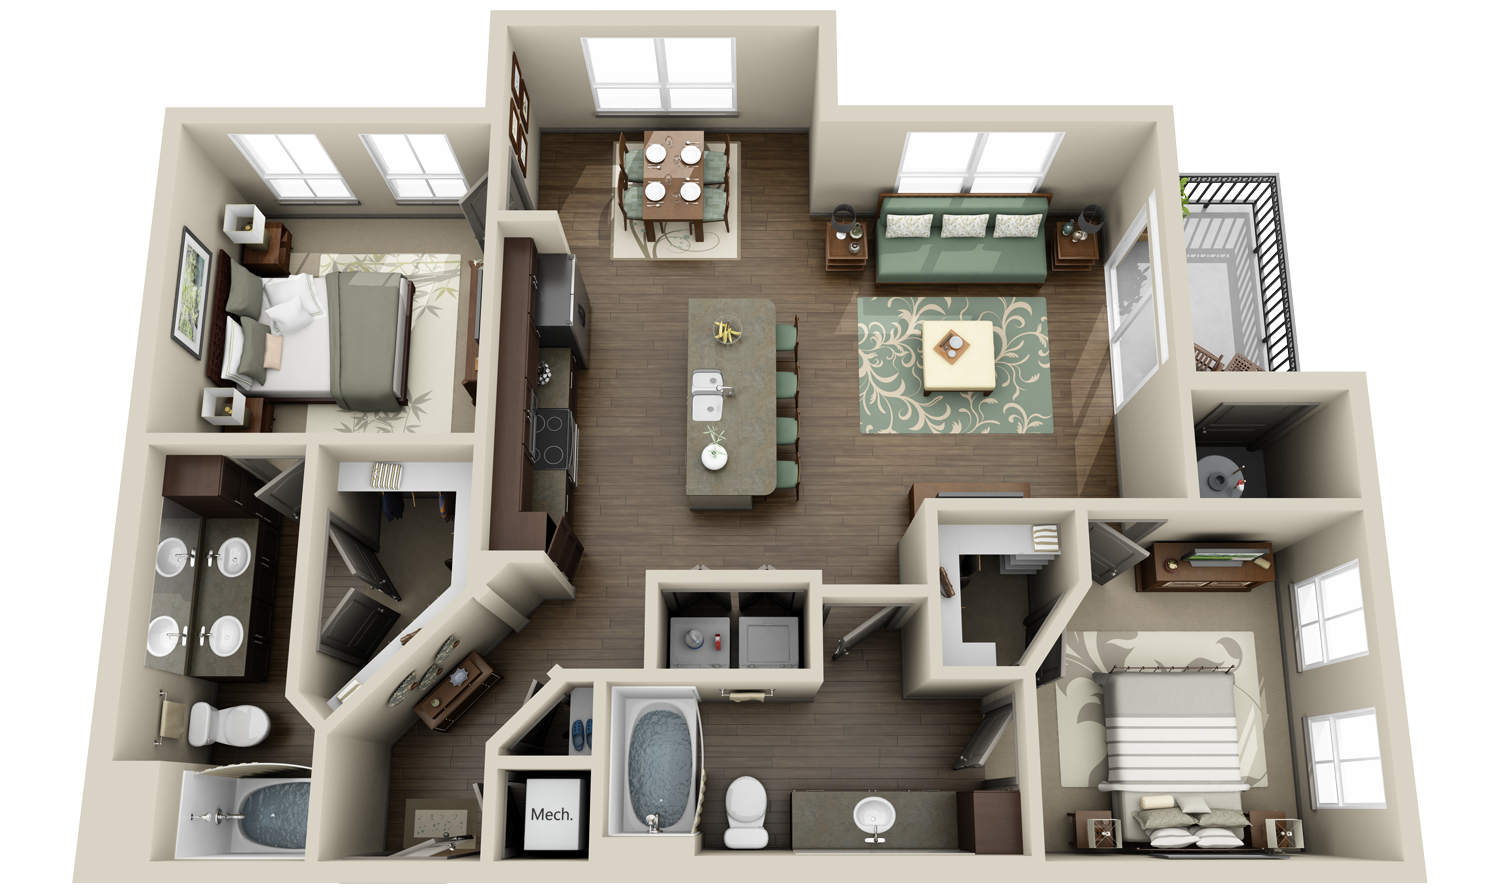 Best 3D Floor Plans for Apartments > Virtual Tours > We ...